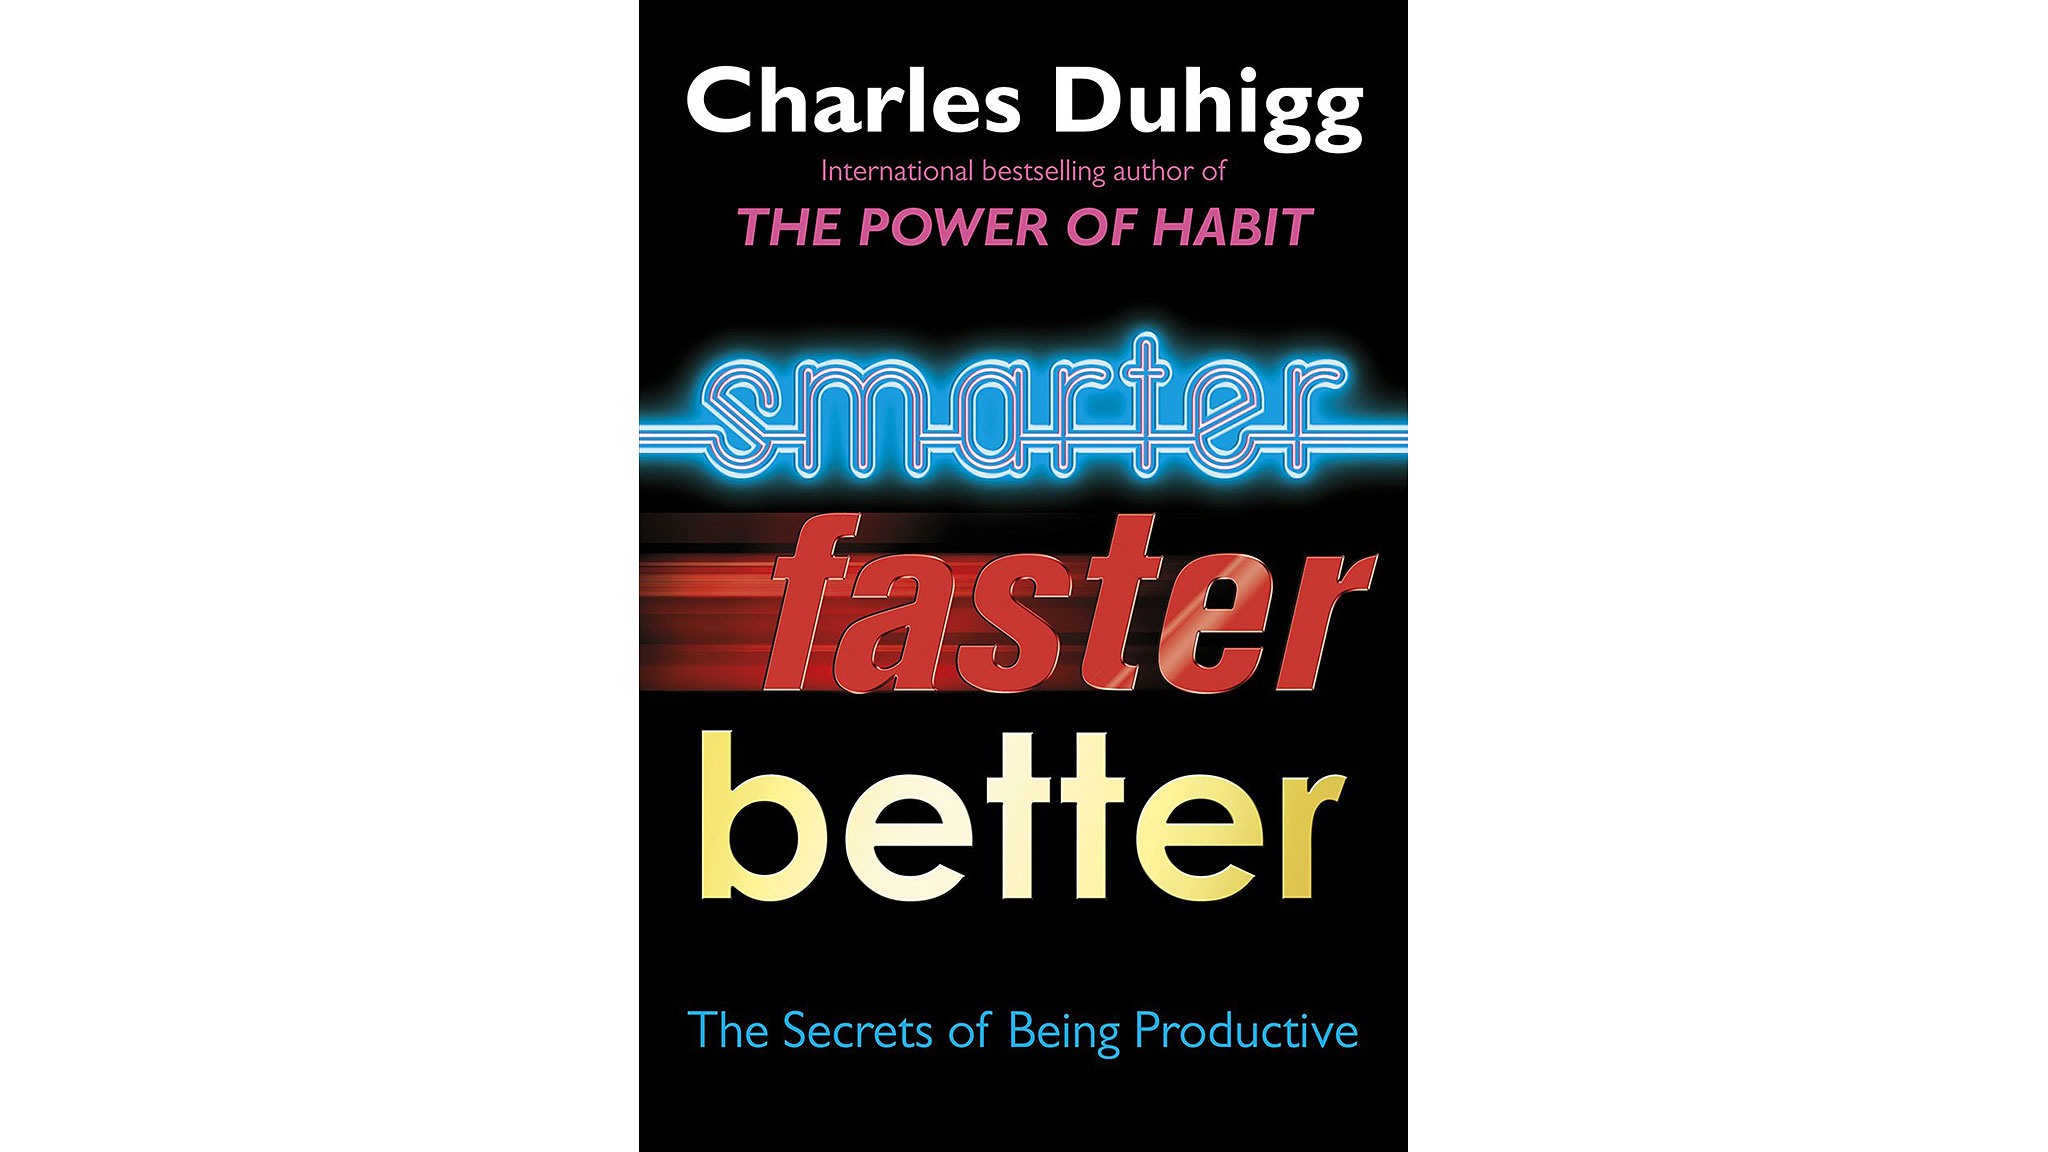 The Power Of Habit Charles Duhigg Ebook